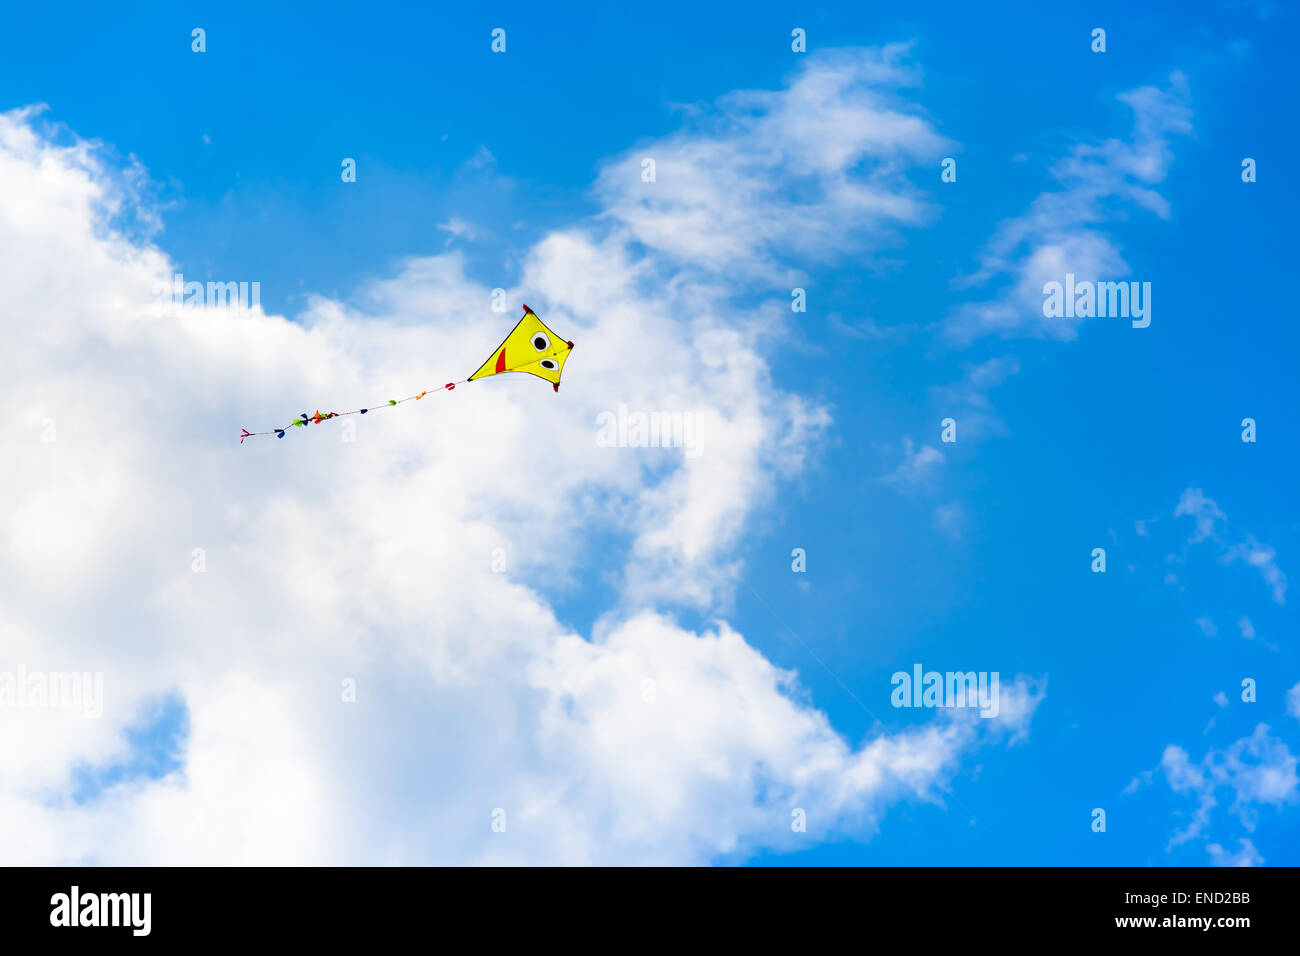 The Kite at the Sky - Colorful kite is flying at the summery sky Stock Photo